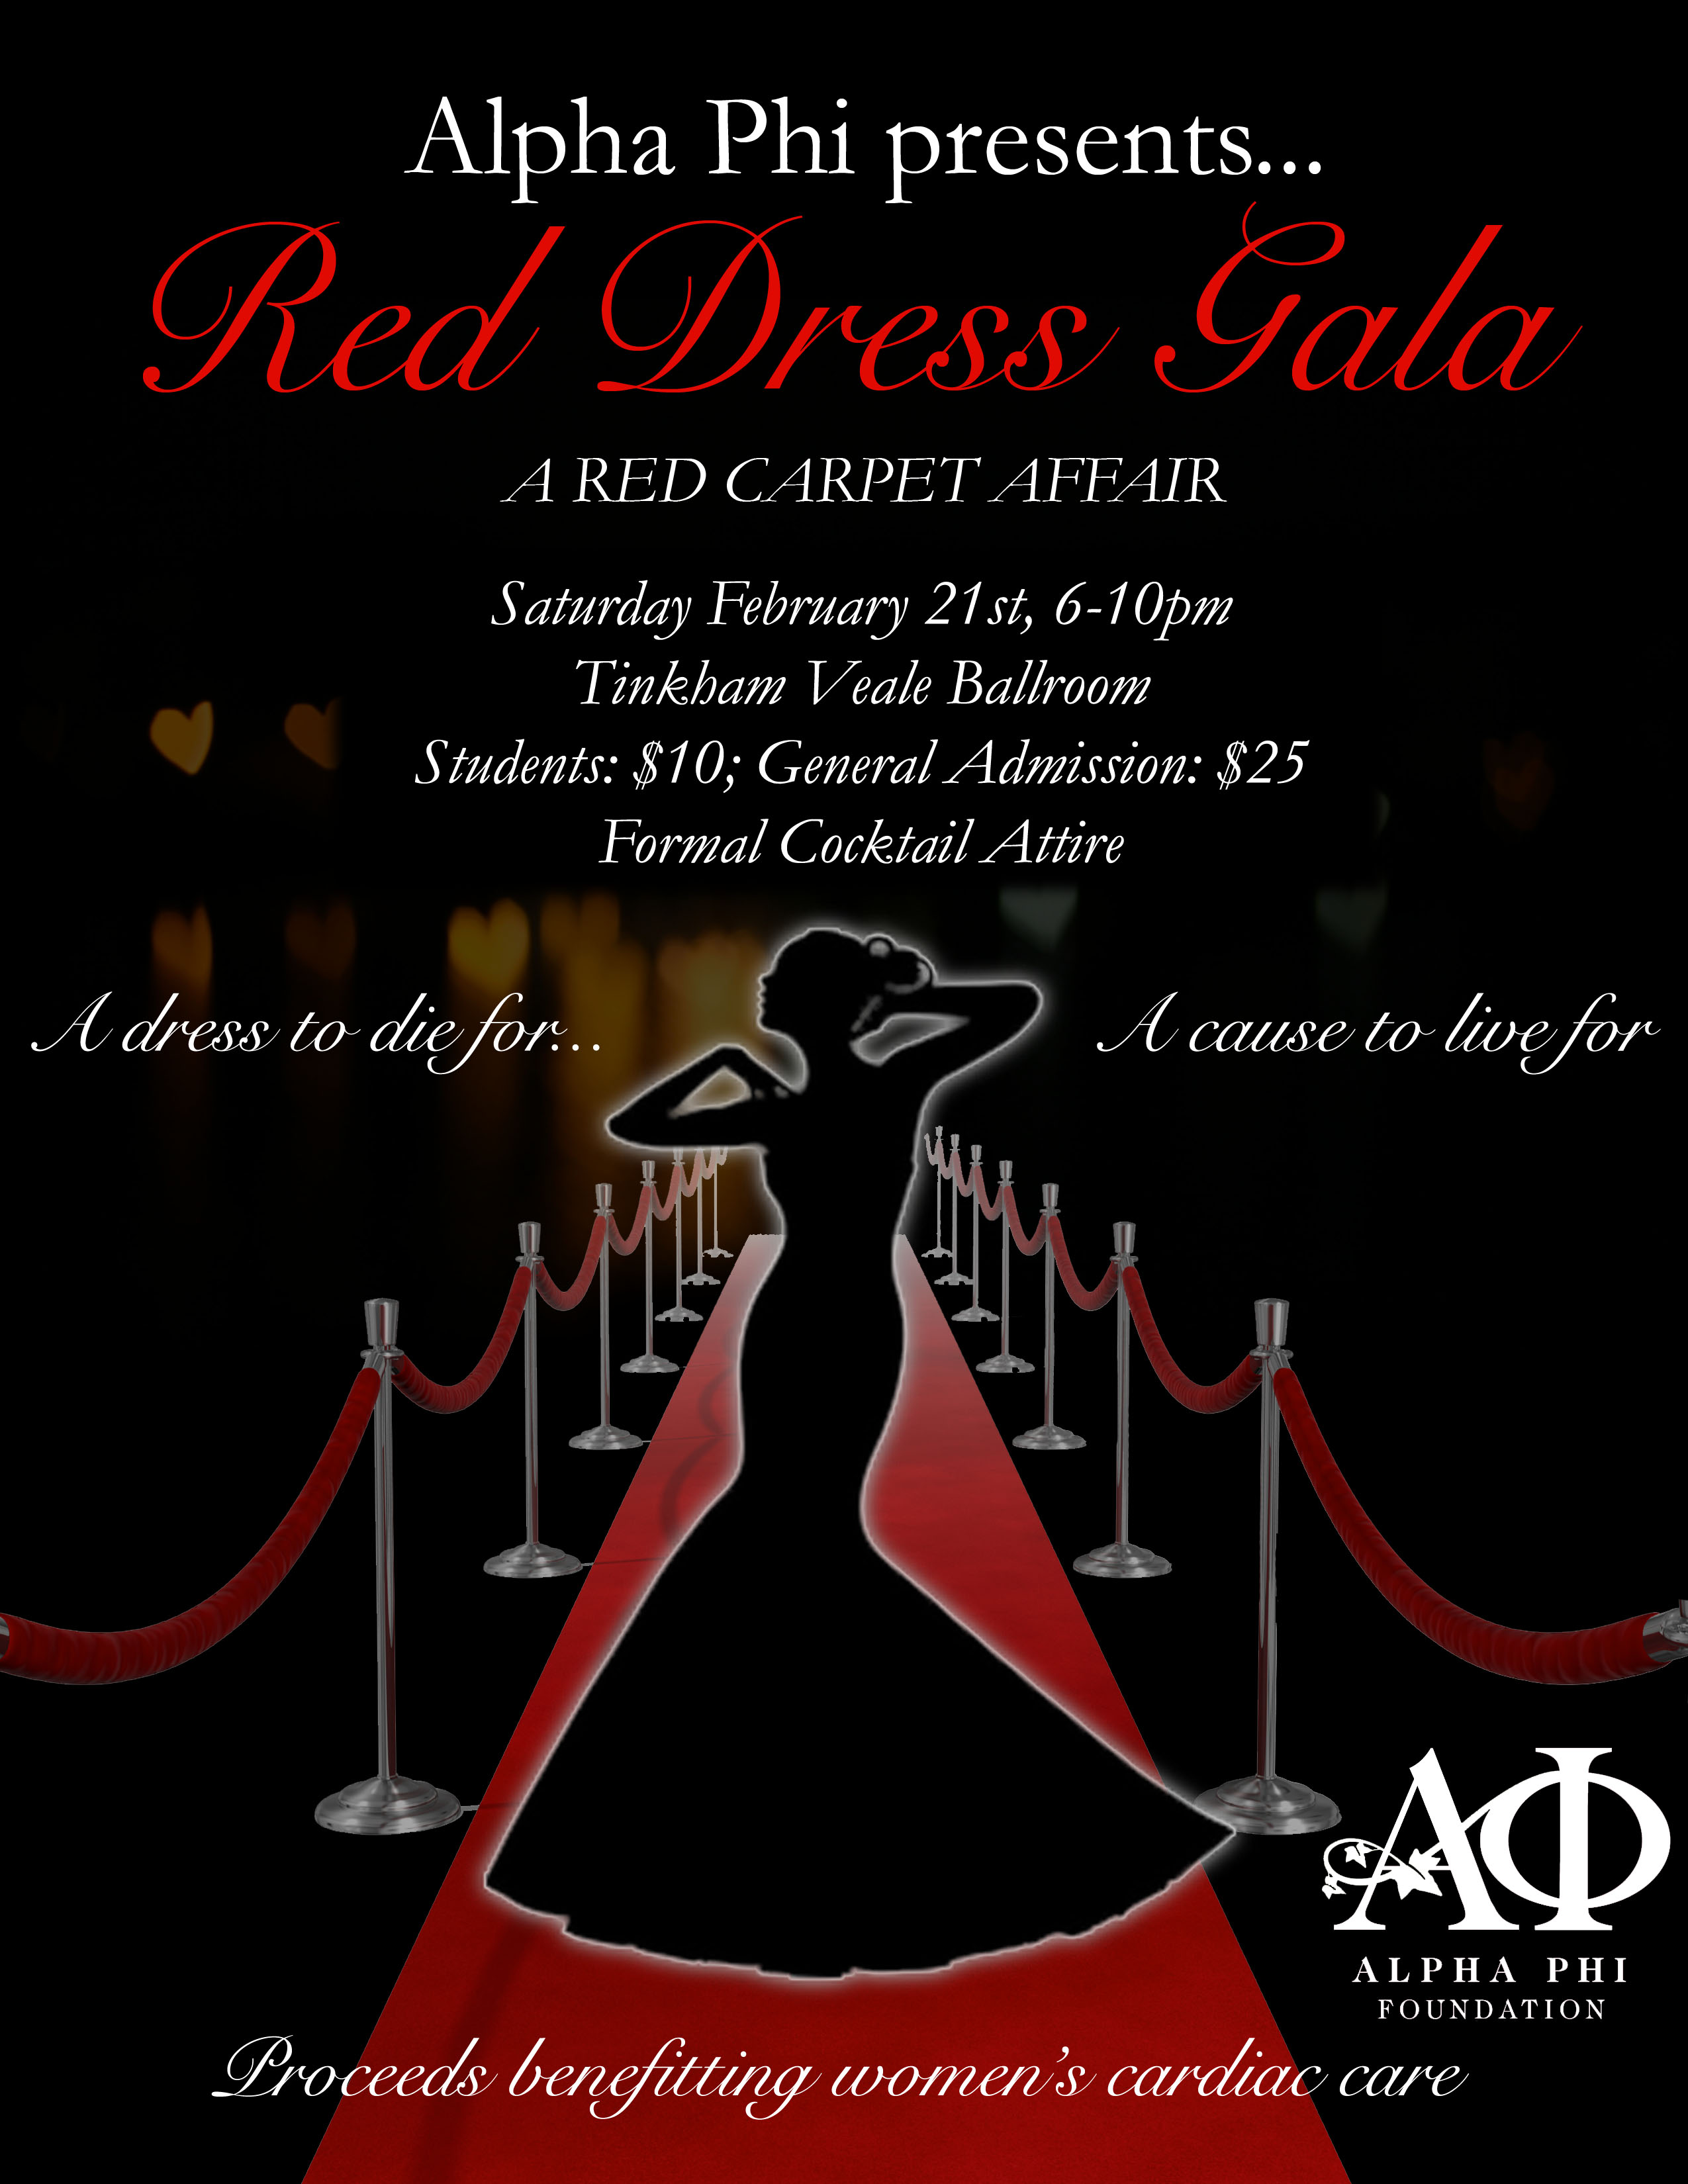 4944eb7ee73 Alpha Phi to host Red Dress Gala to benefit women s cardiac care The ...